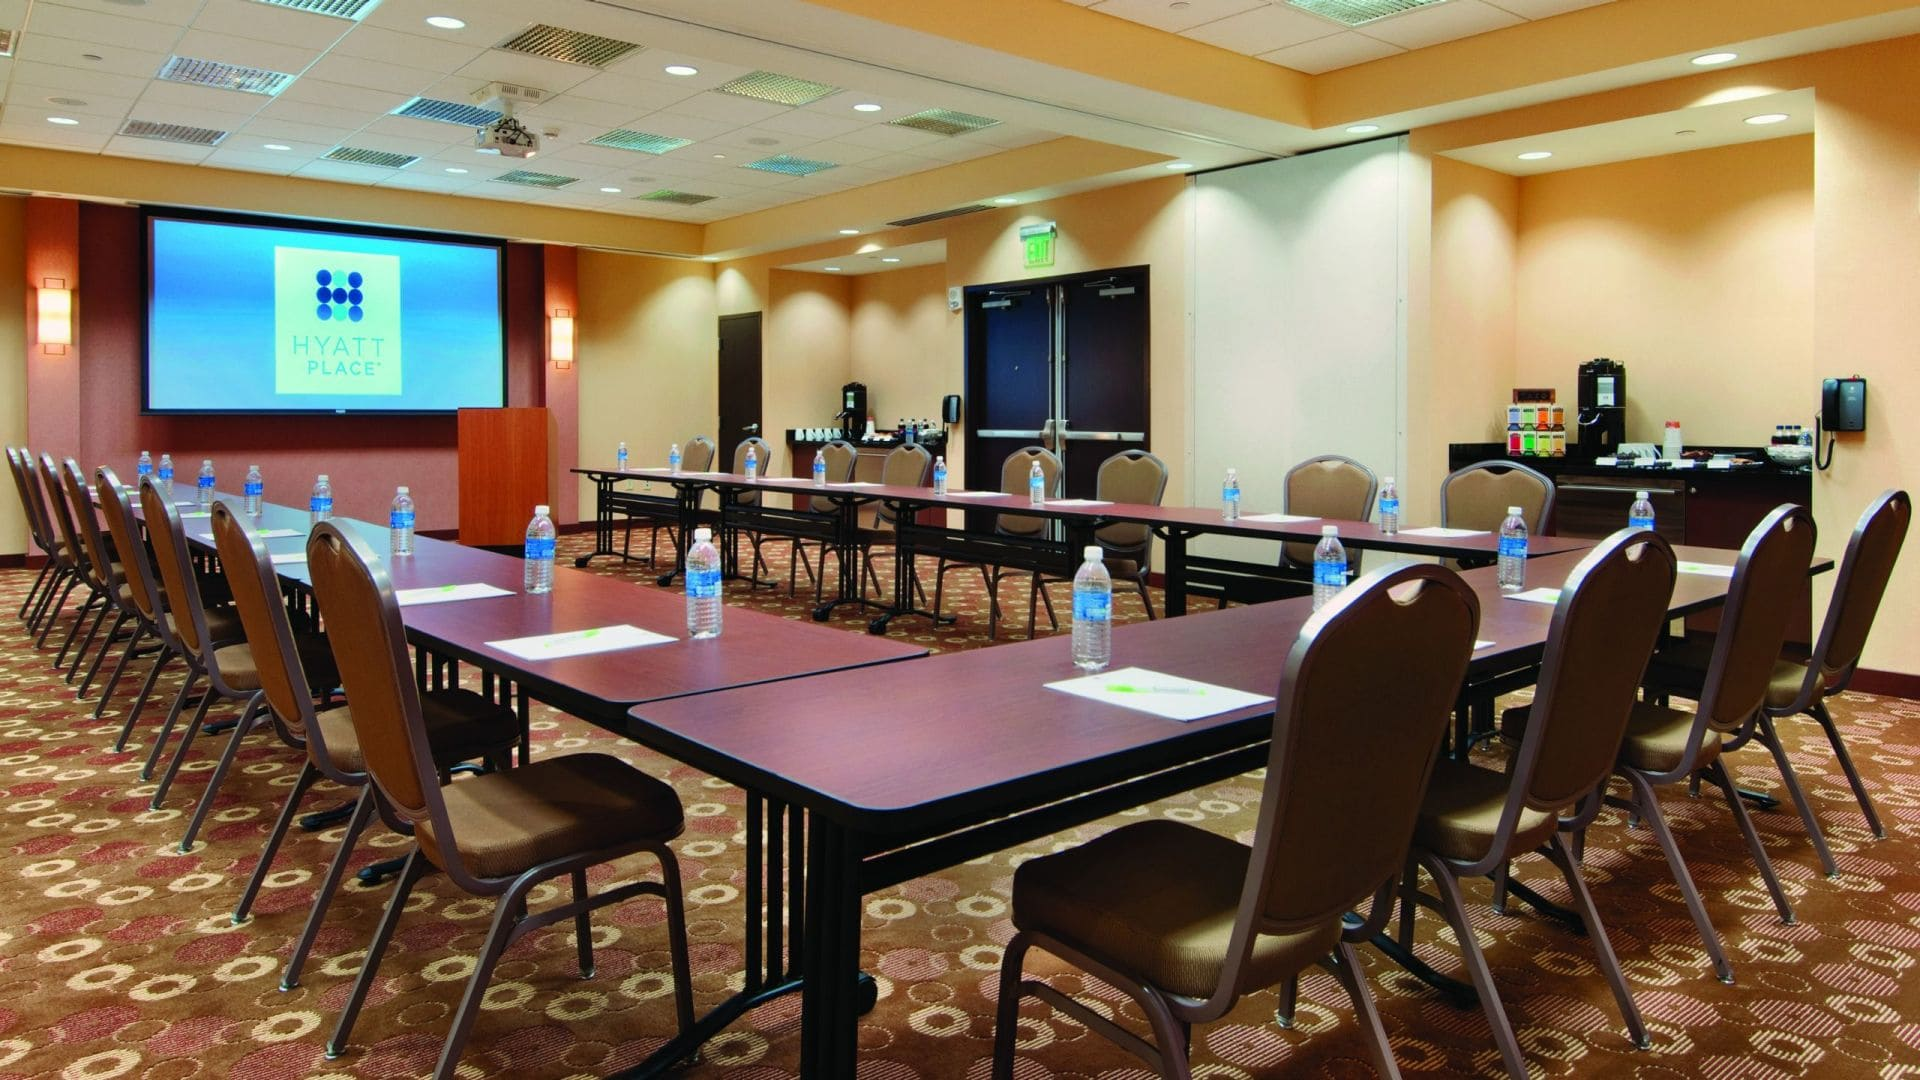 Visit Sugar Land Convention & Visitor Services - Hotel Meeting Facilities